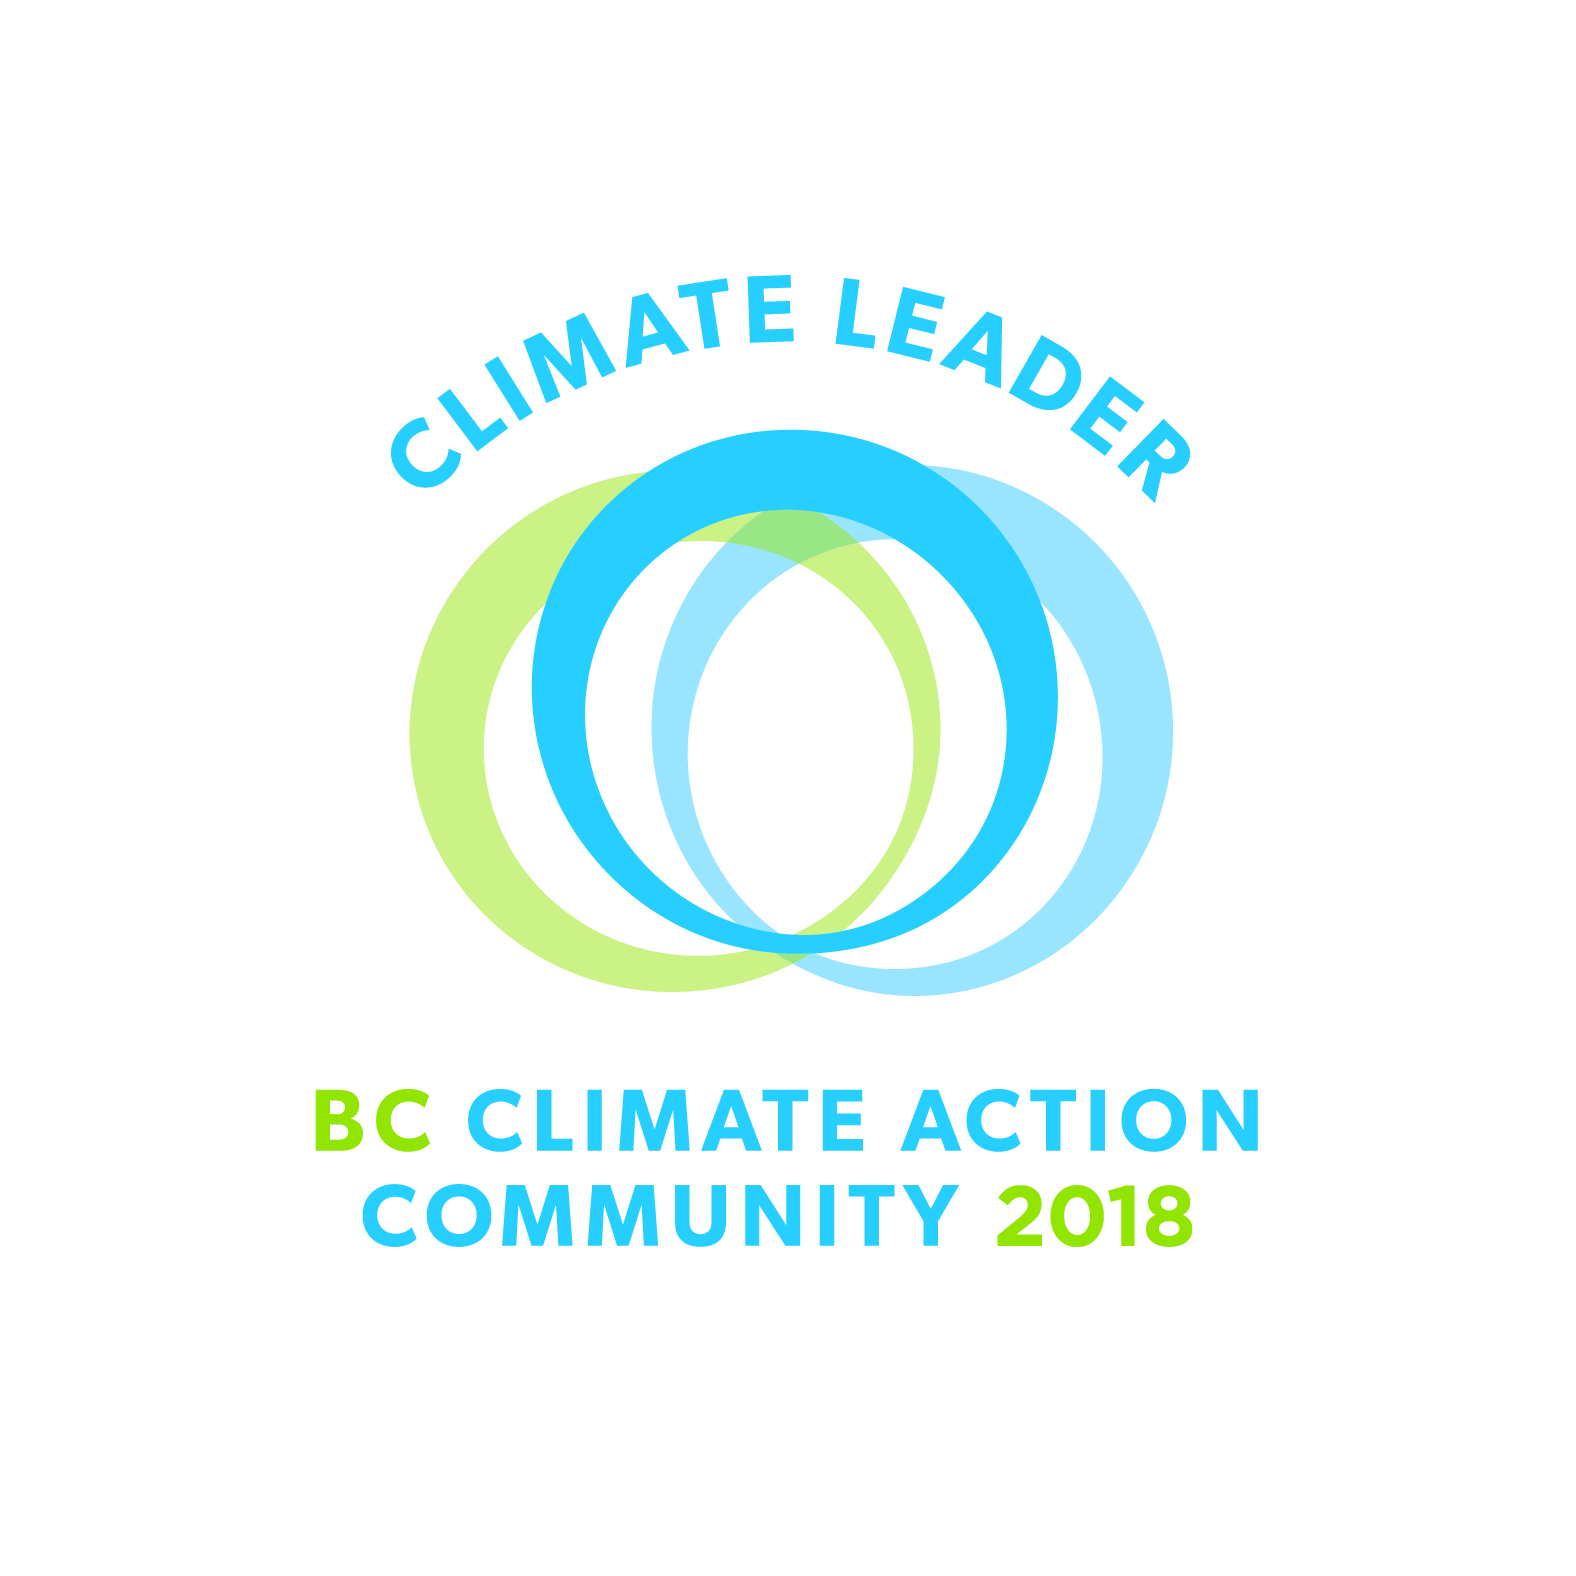 BC Climate Action Community - 2018